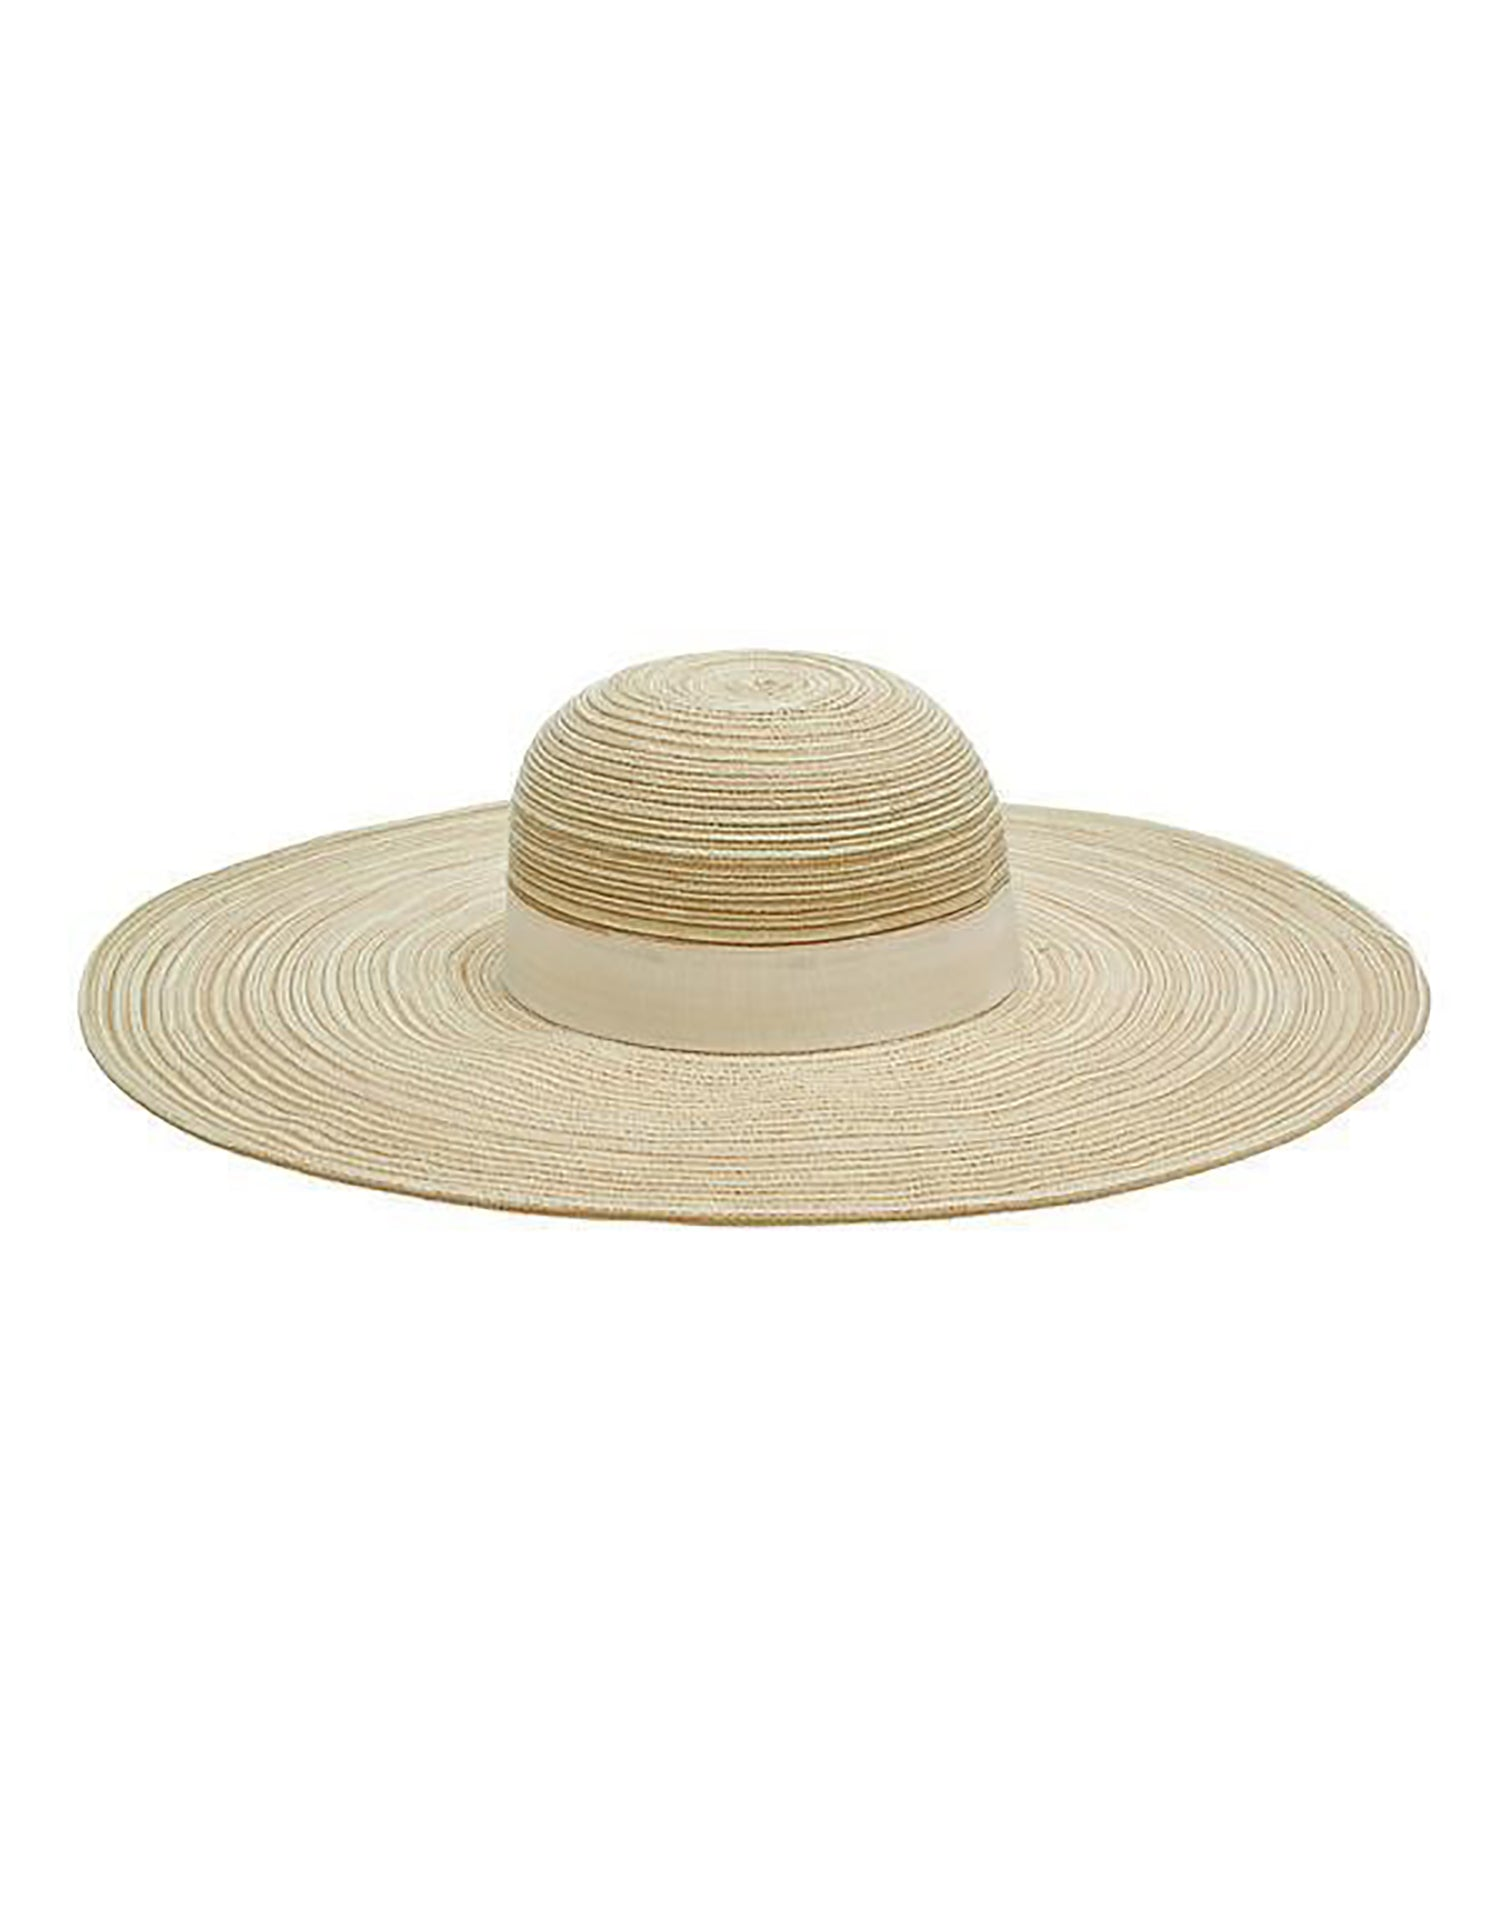 Mixed Poly Braid Sunbrim Hat in Natural - product view